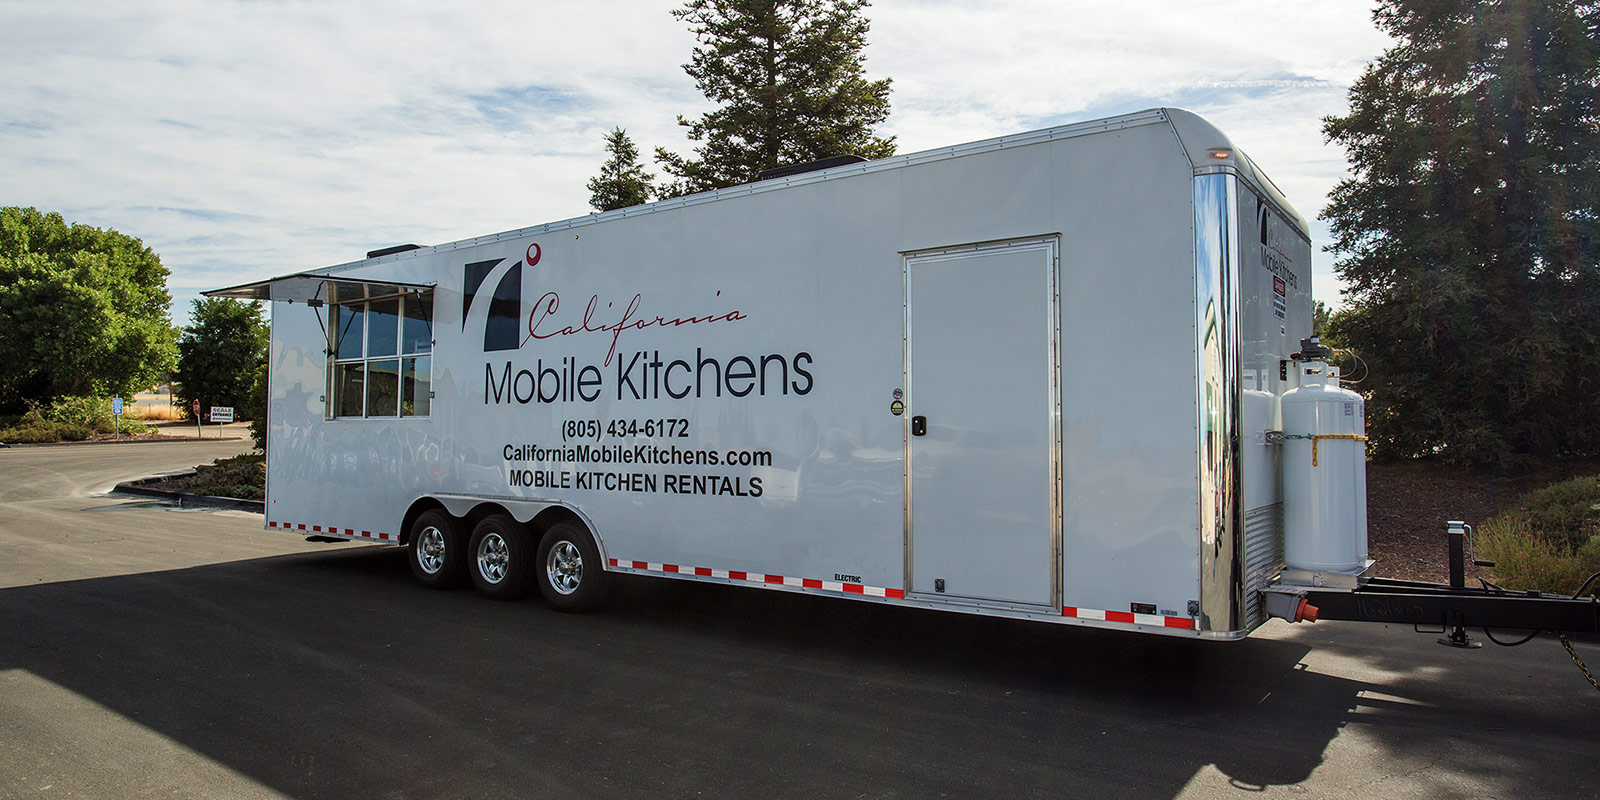 kitchen trailers table lighting fixtures mobile kitchens california 805 434 6172